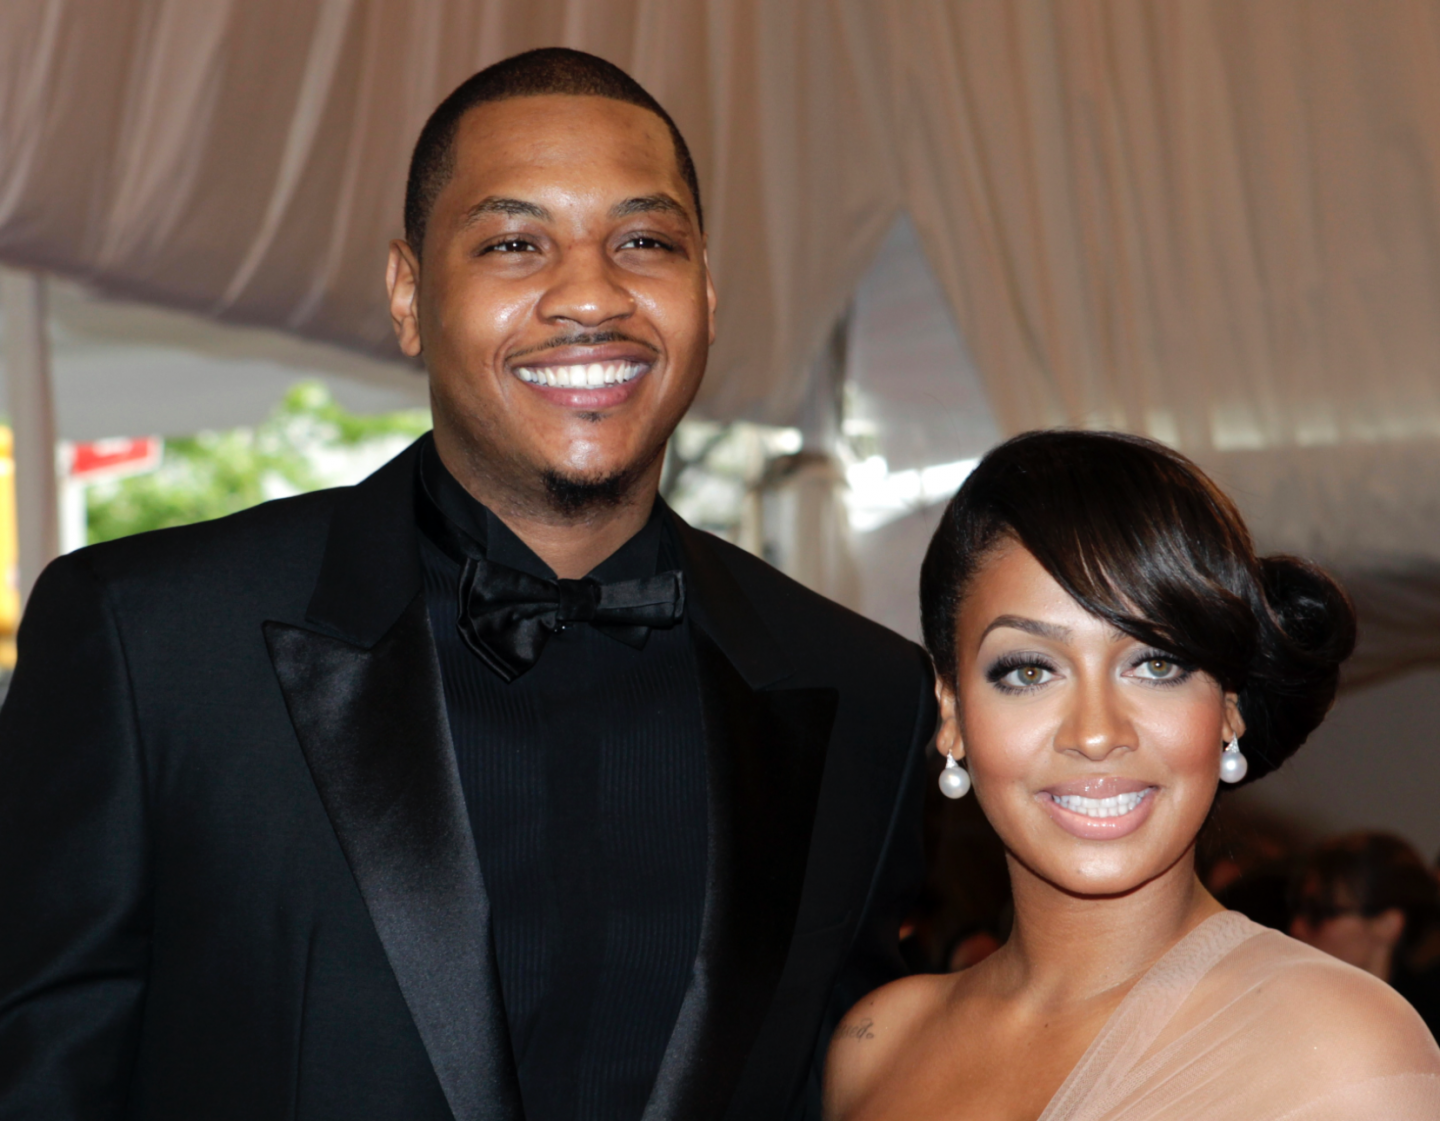 Stylish couple, Carmelo and La La Anthony